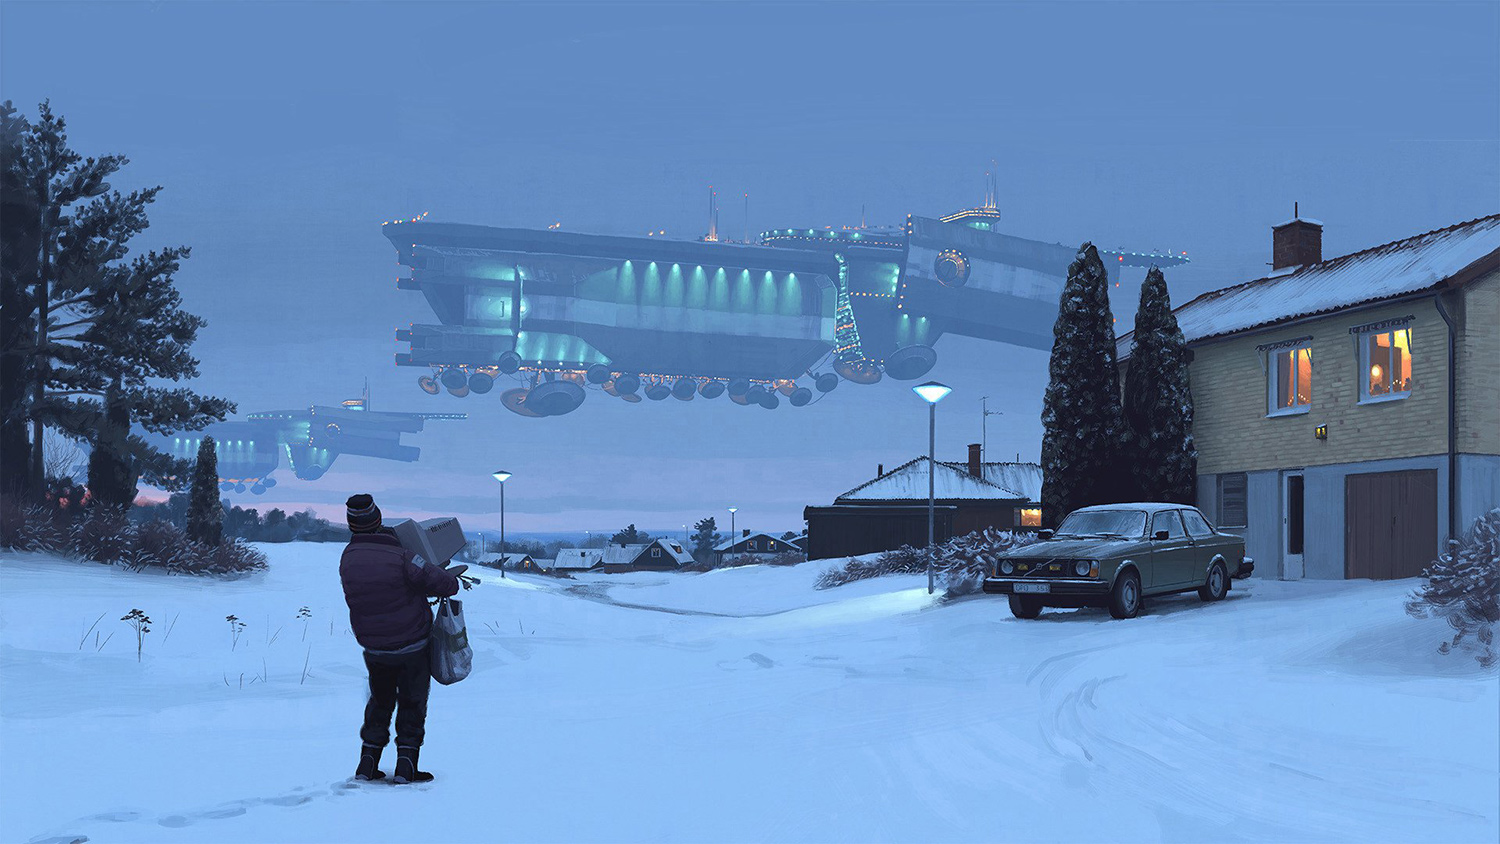 Simon Stalenhag - distant airship in snowy landscape